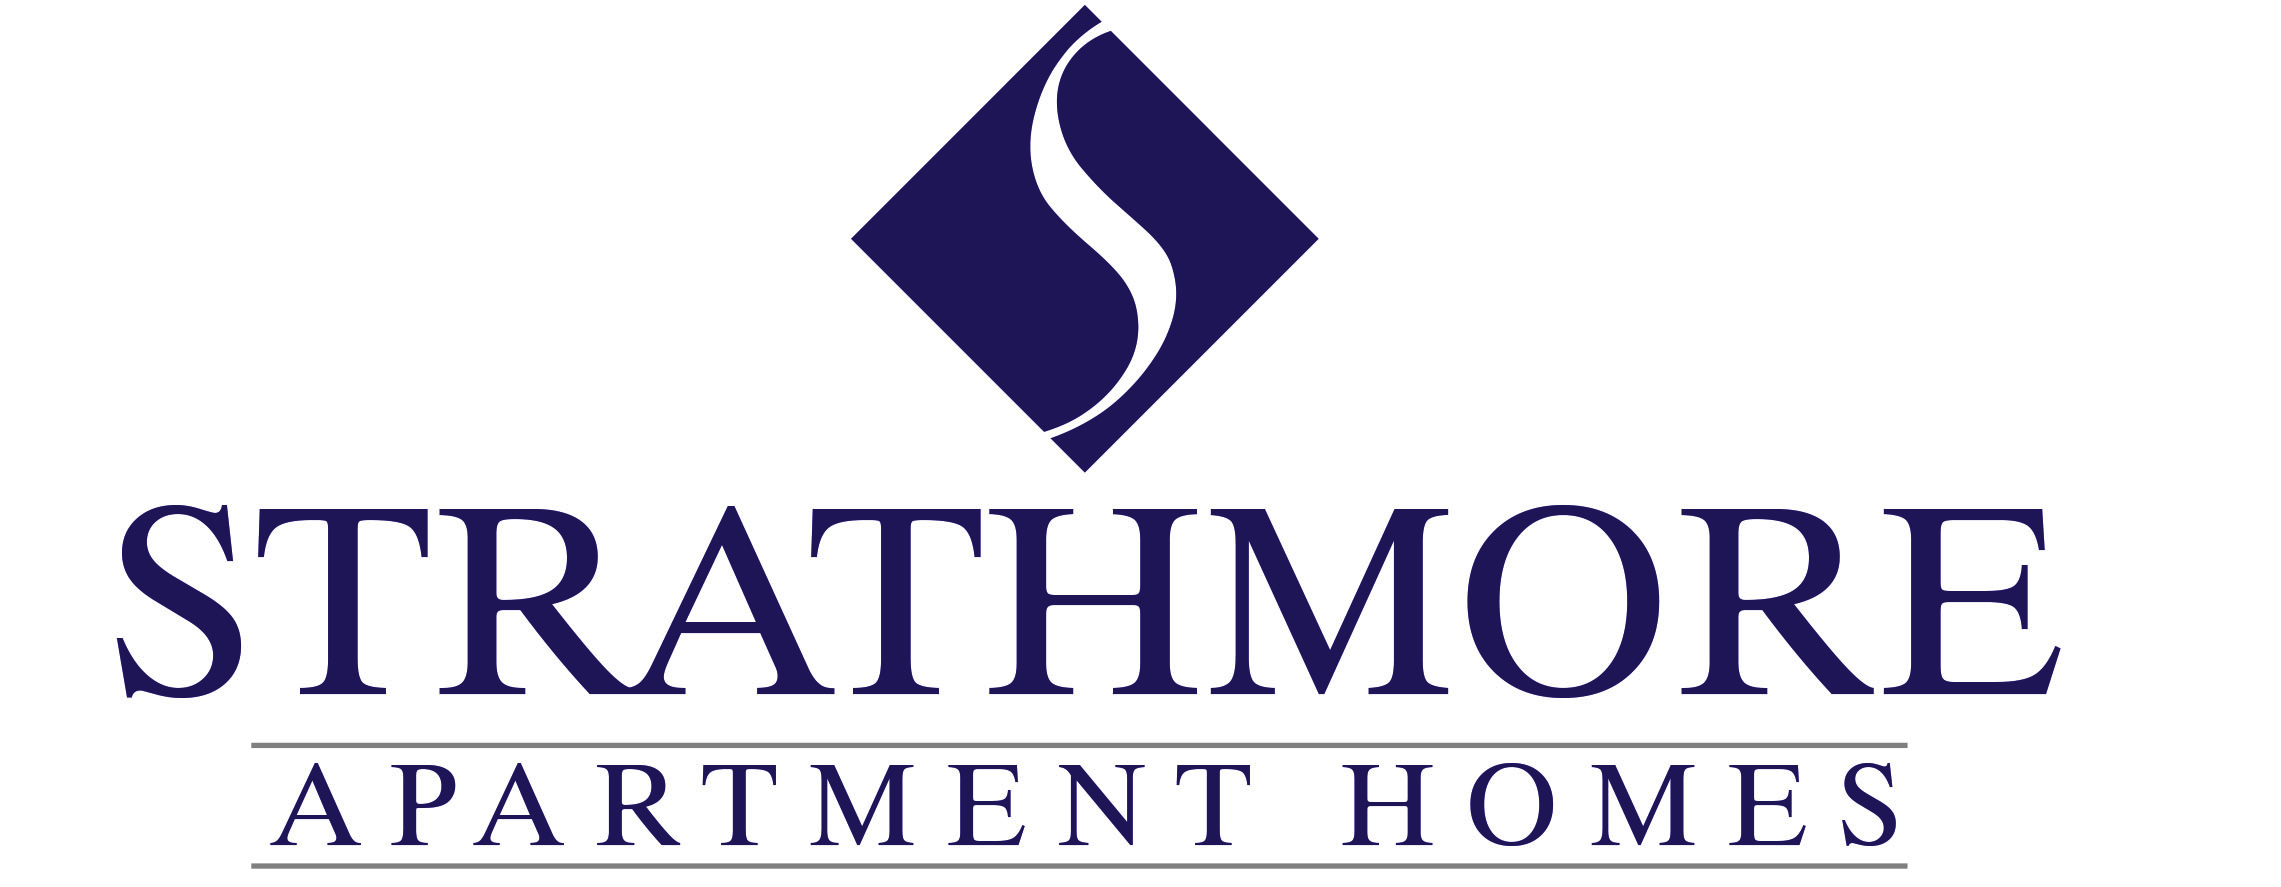 Strathmore Apartment Homes Logo